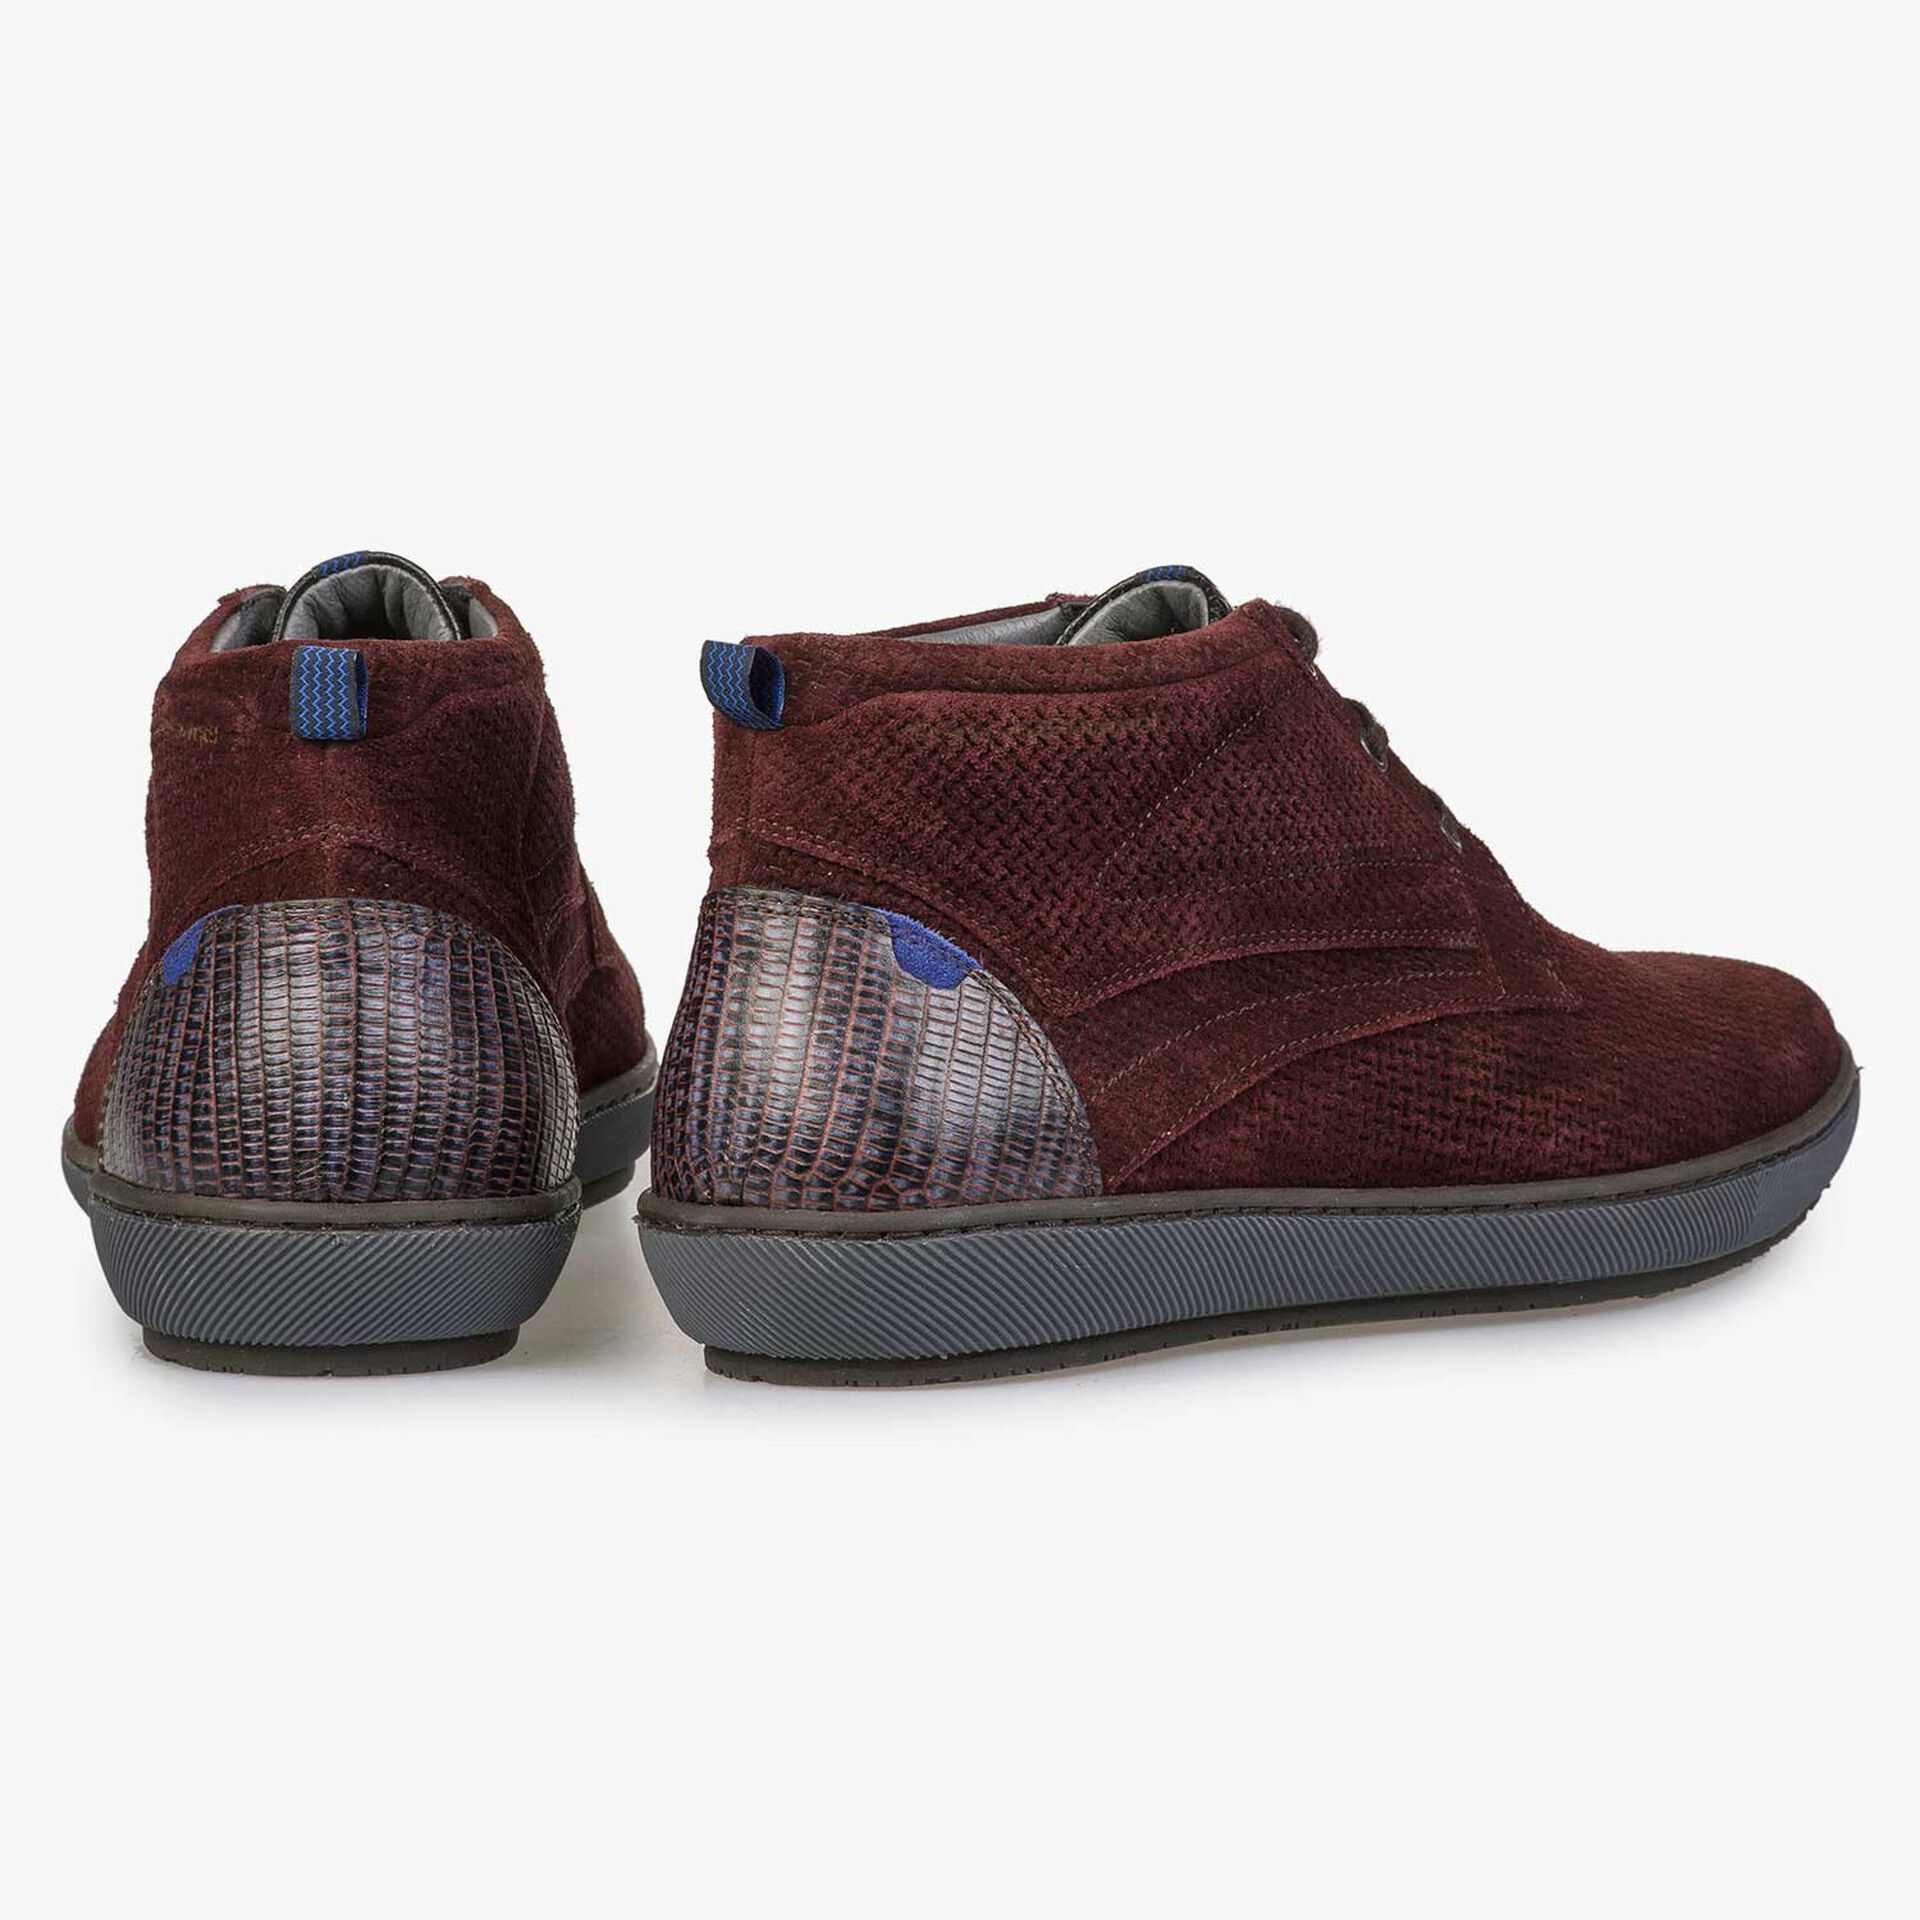 Burgundy red lace boot made of calf's suede leather